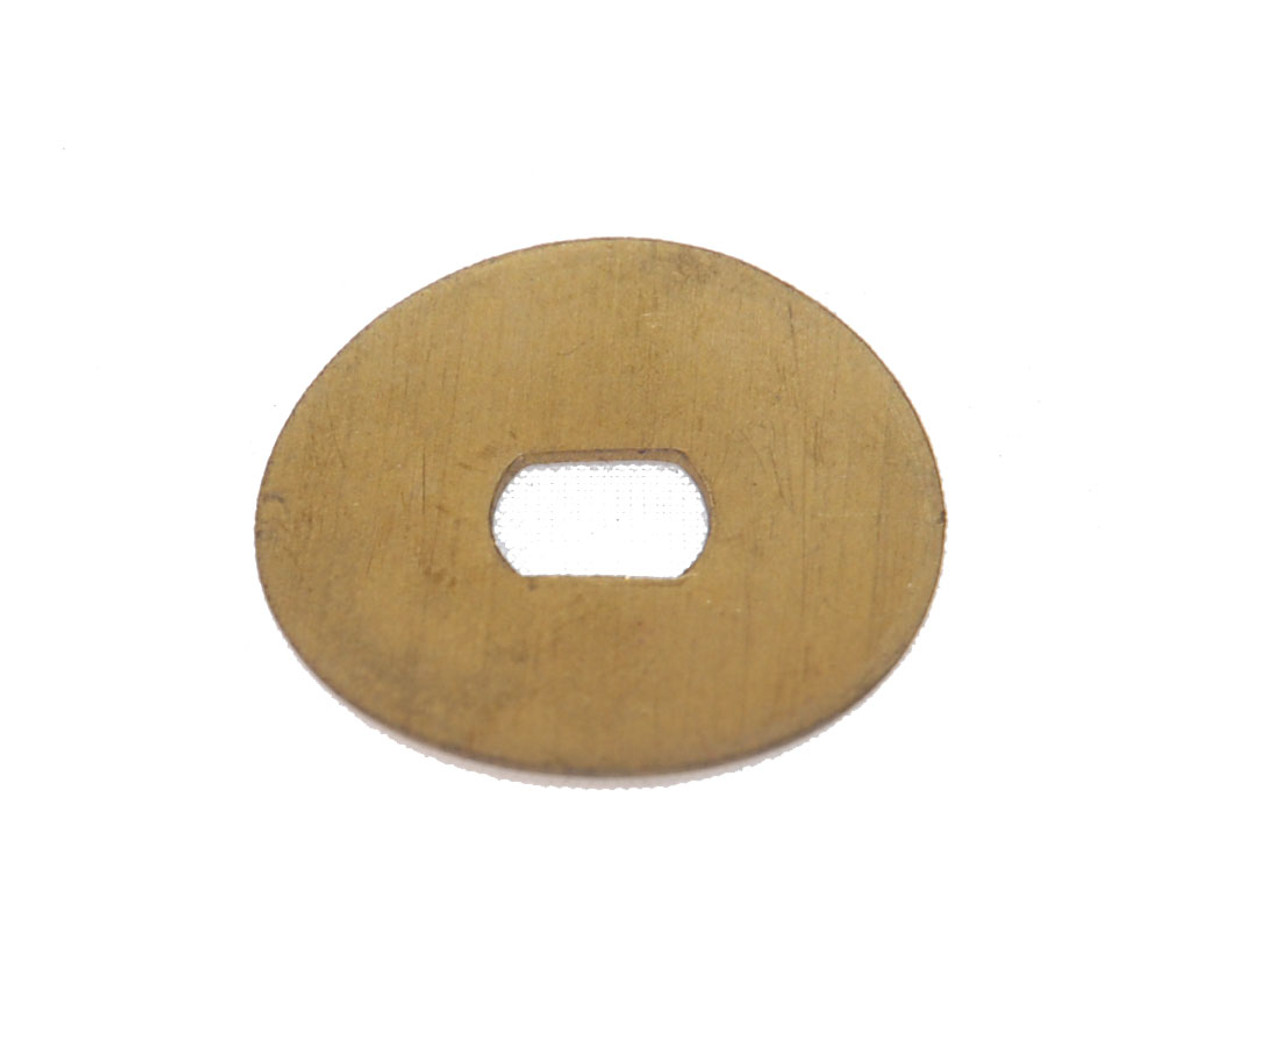 Brass Washer for the Bonnet / Hood (RB5847)